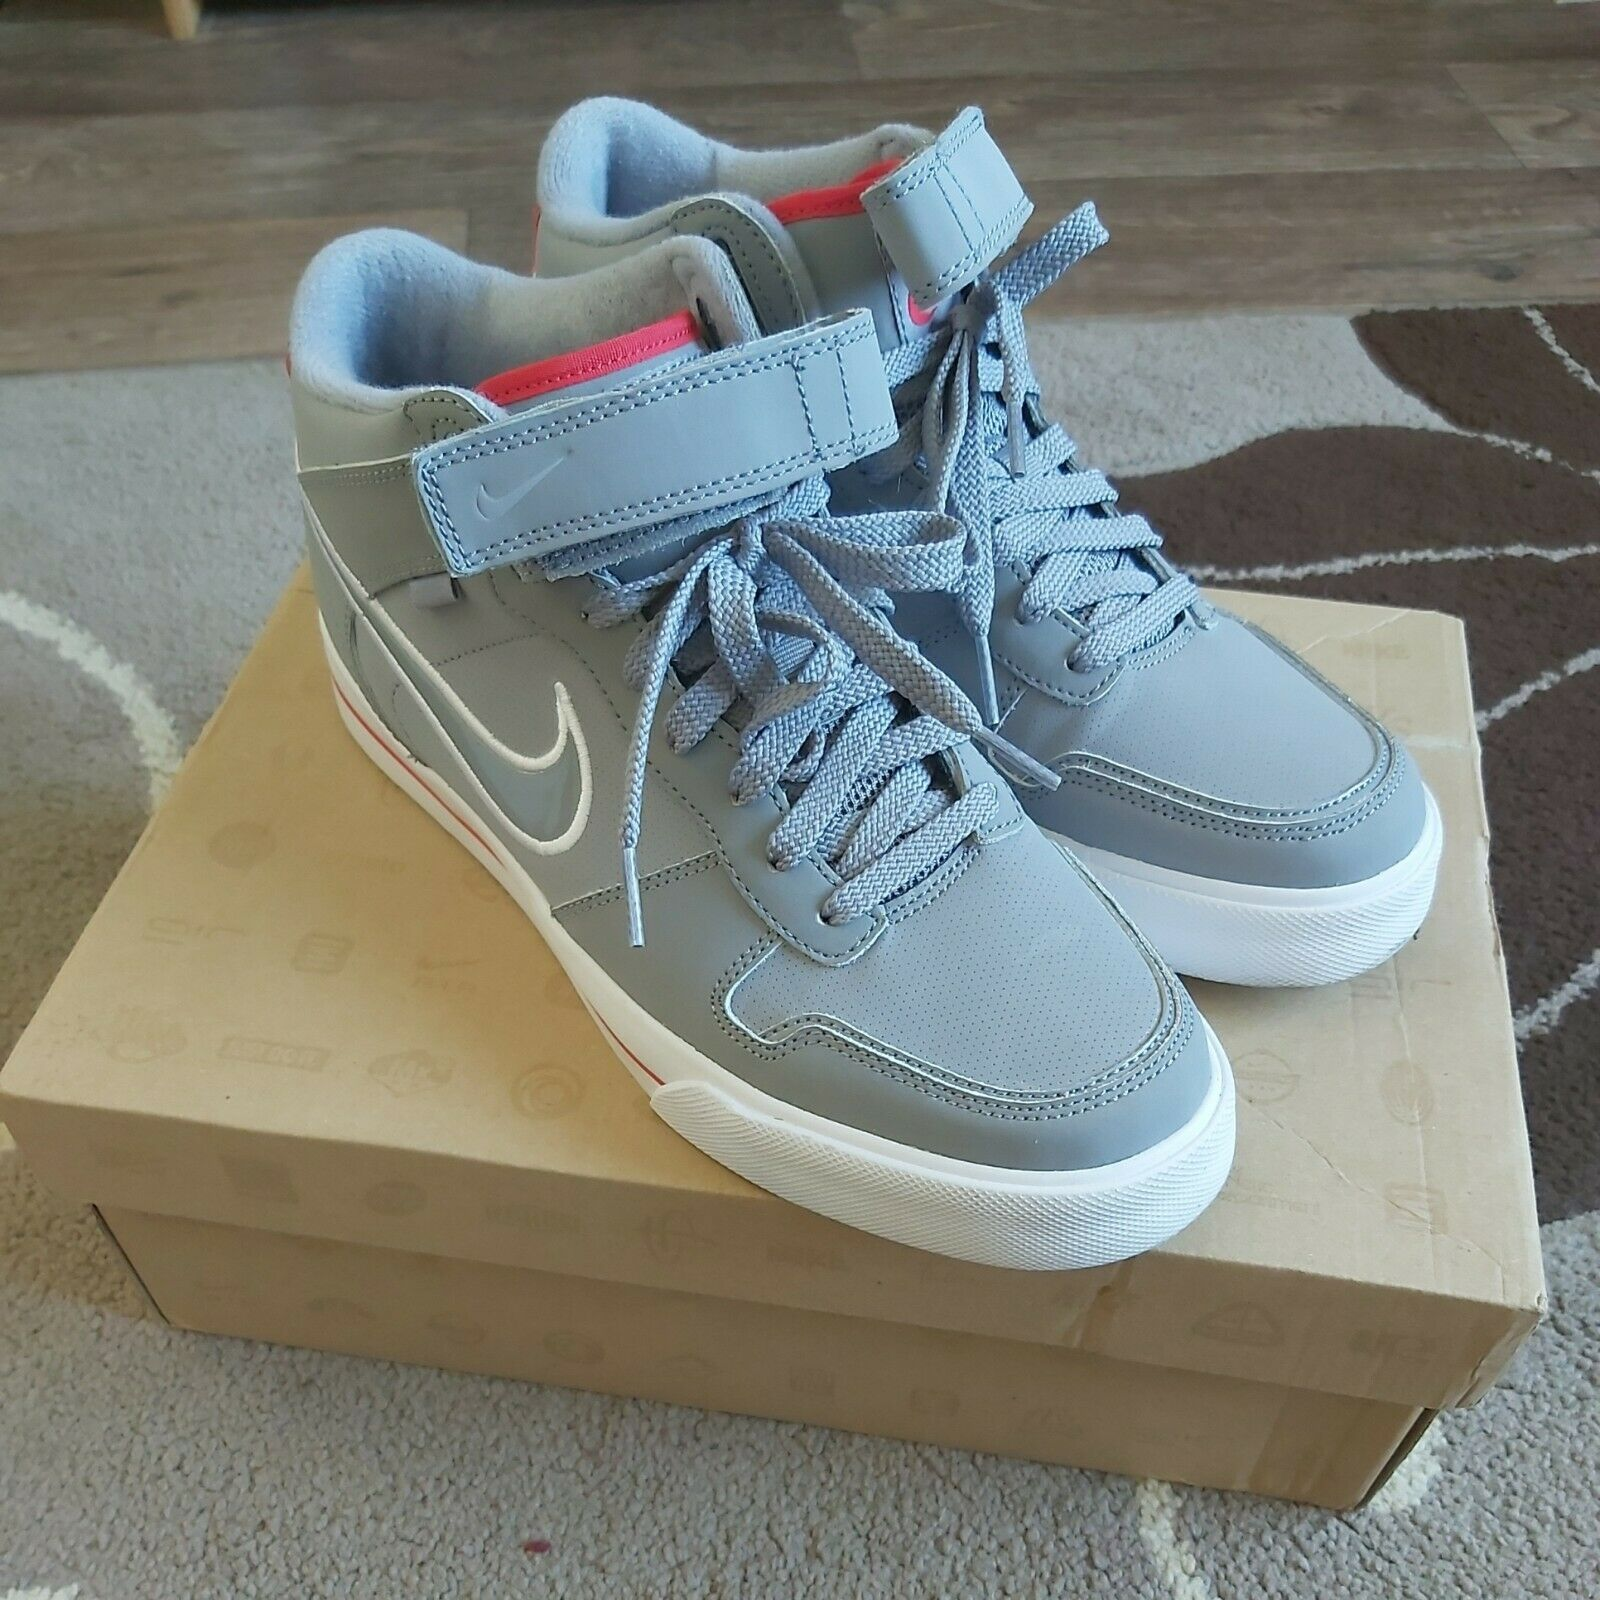 Mens Nike mid Top sellwood Trainers Size 8